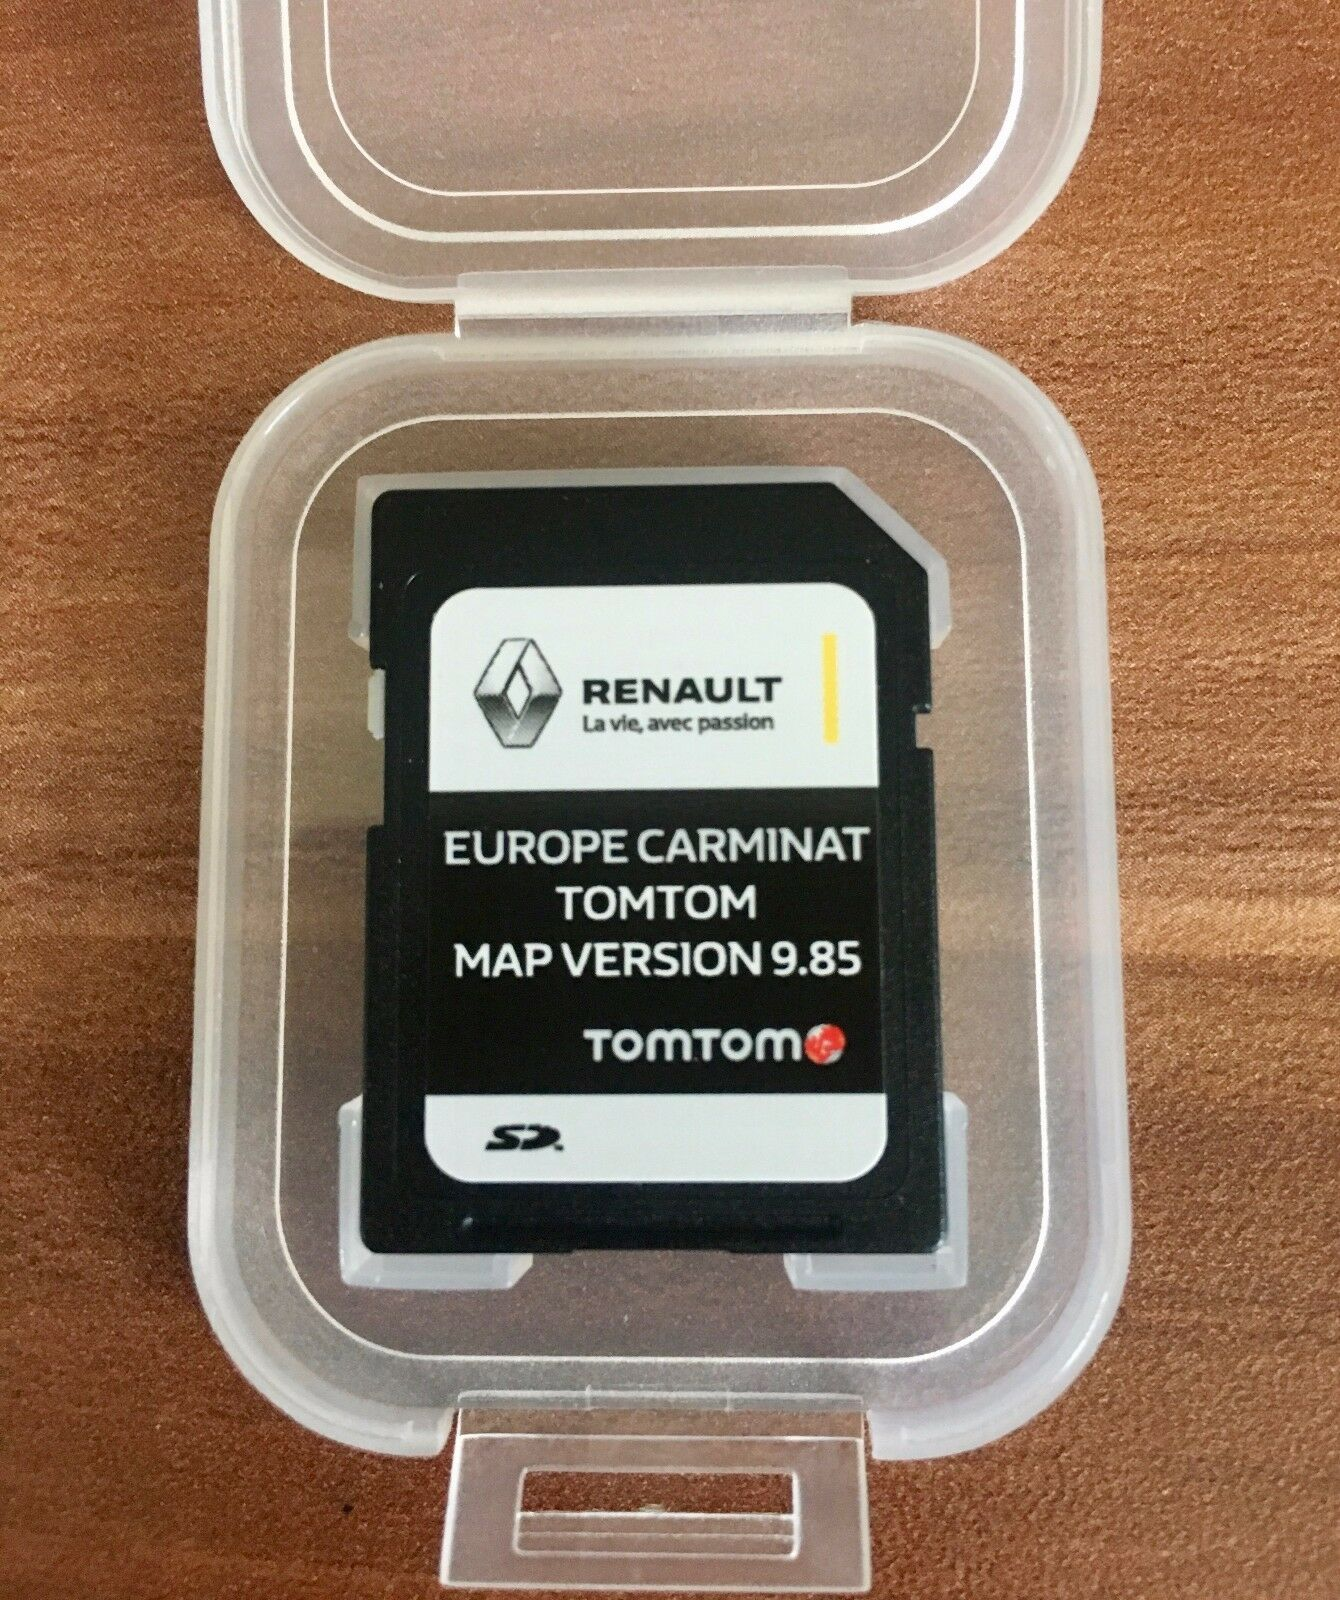 renault carminat tomtom sd card navigation map 2017 2018 satnav eur 39 88 picclick fr. Black Bedroom Furniture Sets. Home Design Ideas